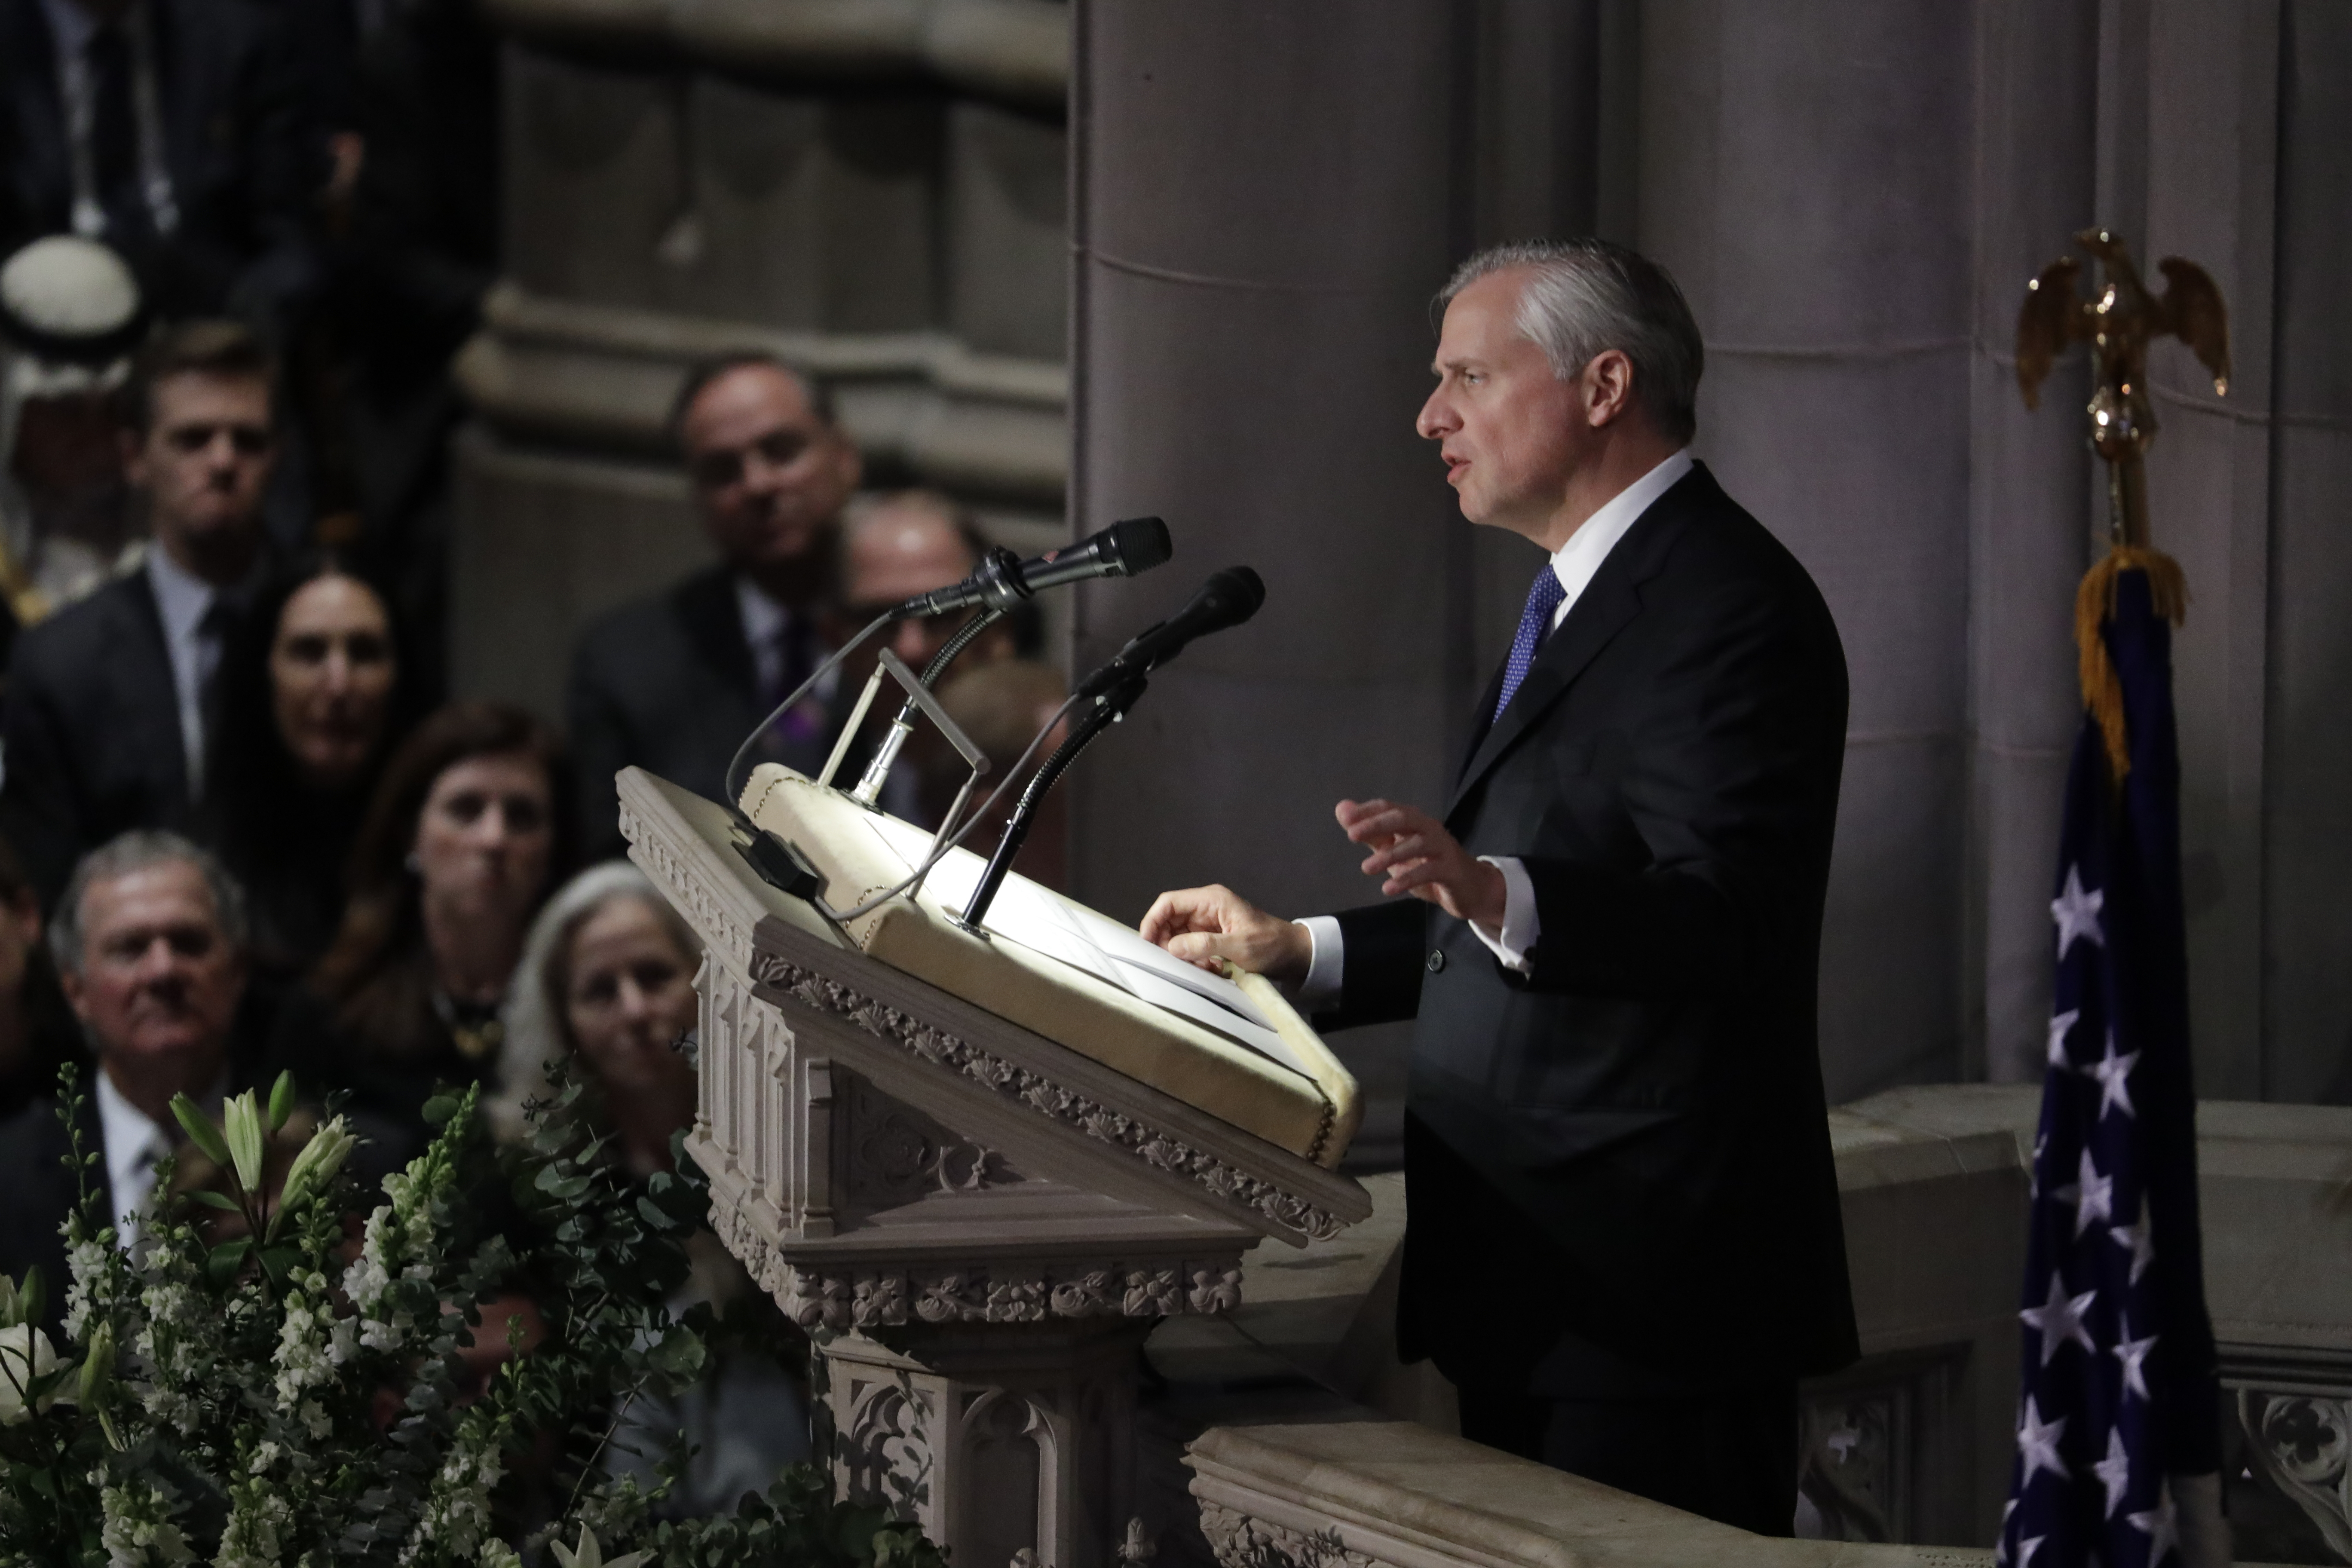 Presidential biographer Jon Meacham speaks during the State Funeral for former President George H.W. Bush at the National Cathedral, Wednesday, Dec. 5, 2018, in Washington. (AP Photo/Evan Vucci)